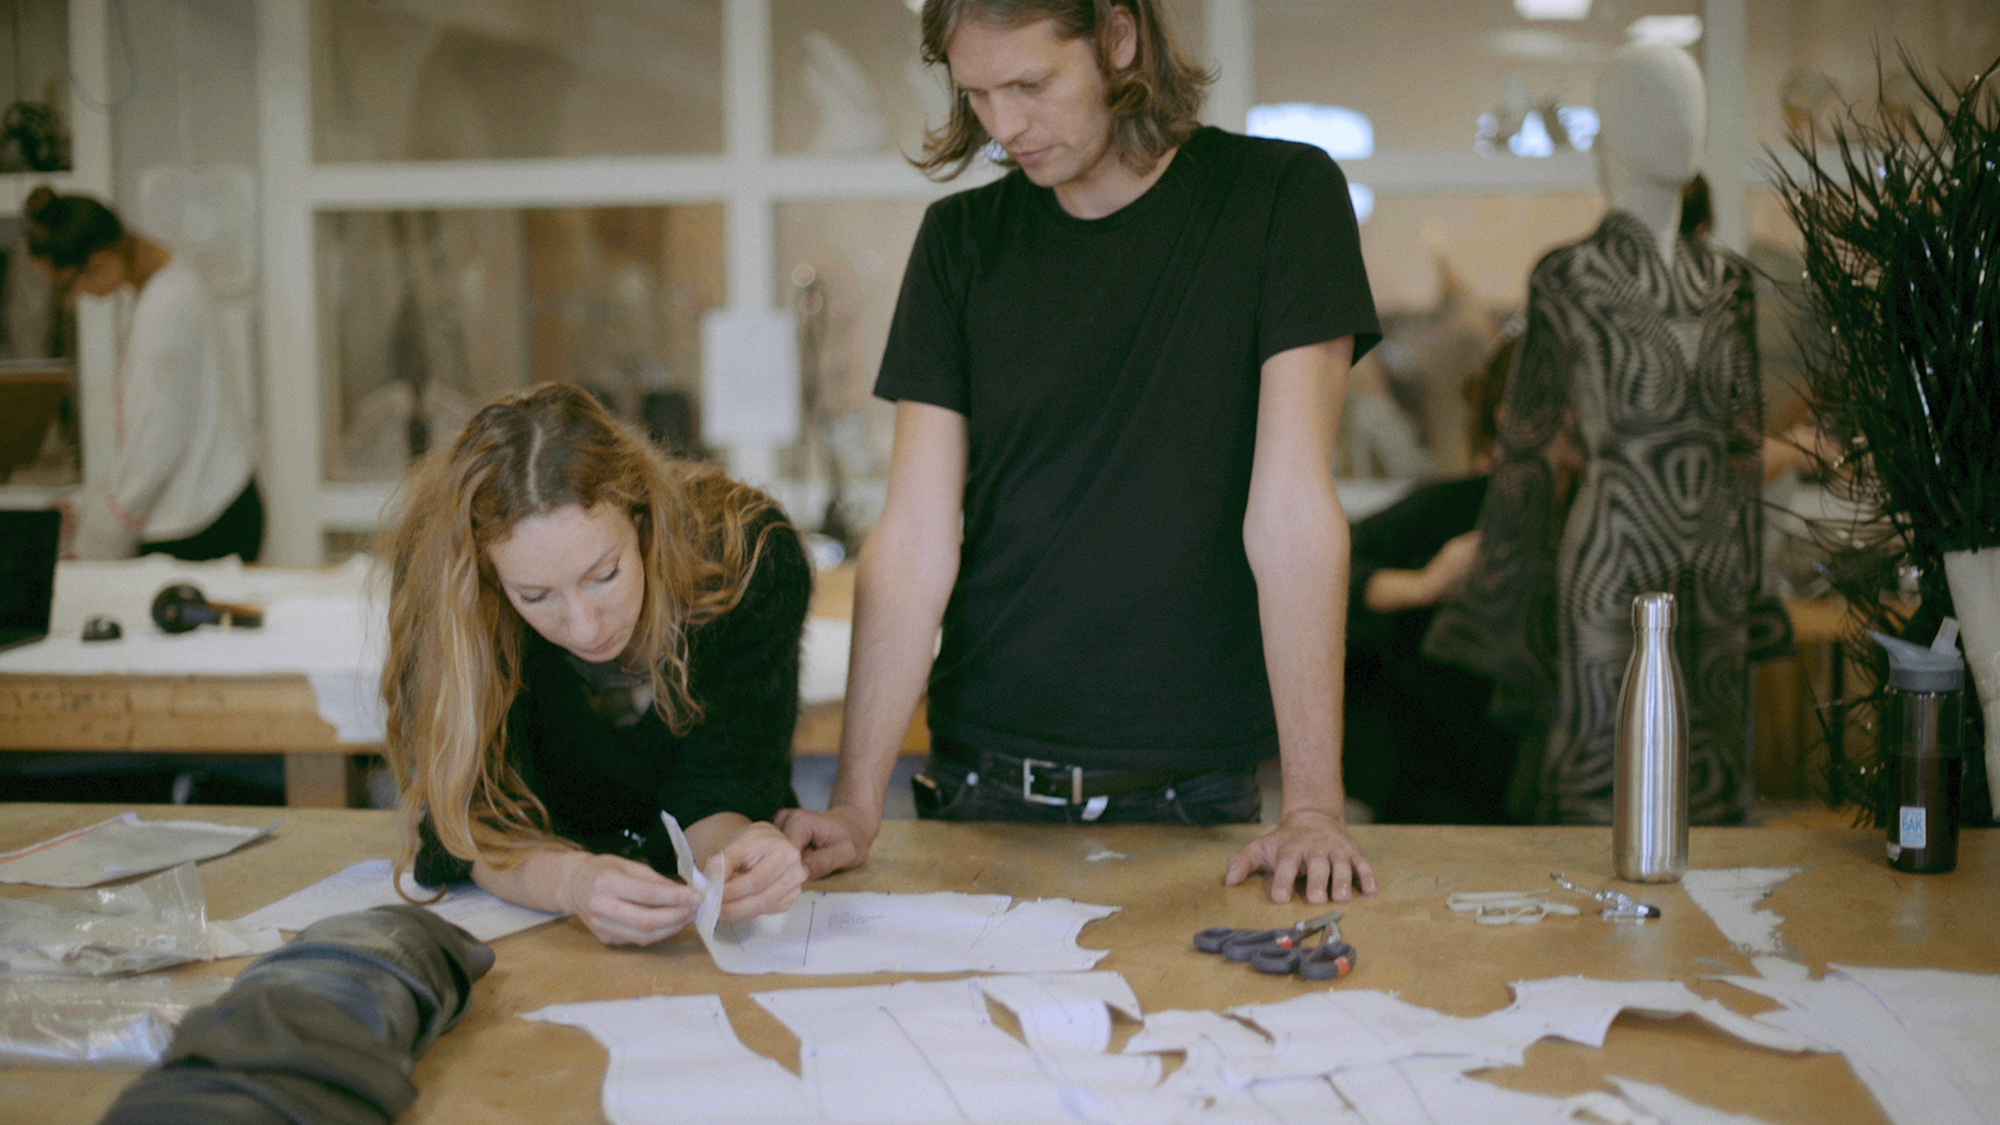 Watch: LGW x Dazed video portrait: In The Studio with Iris van Herpen & Salvador Breed